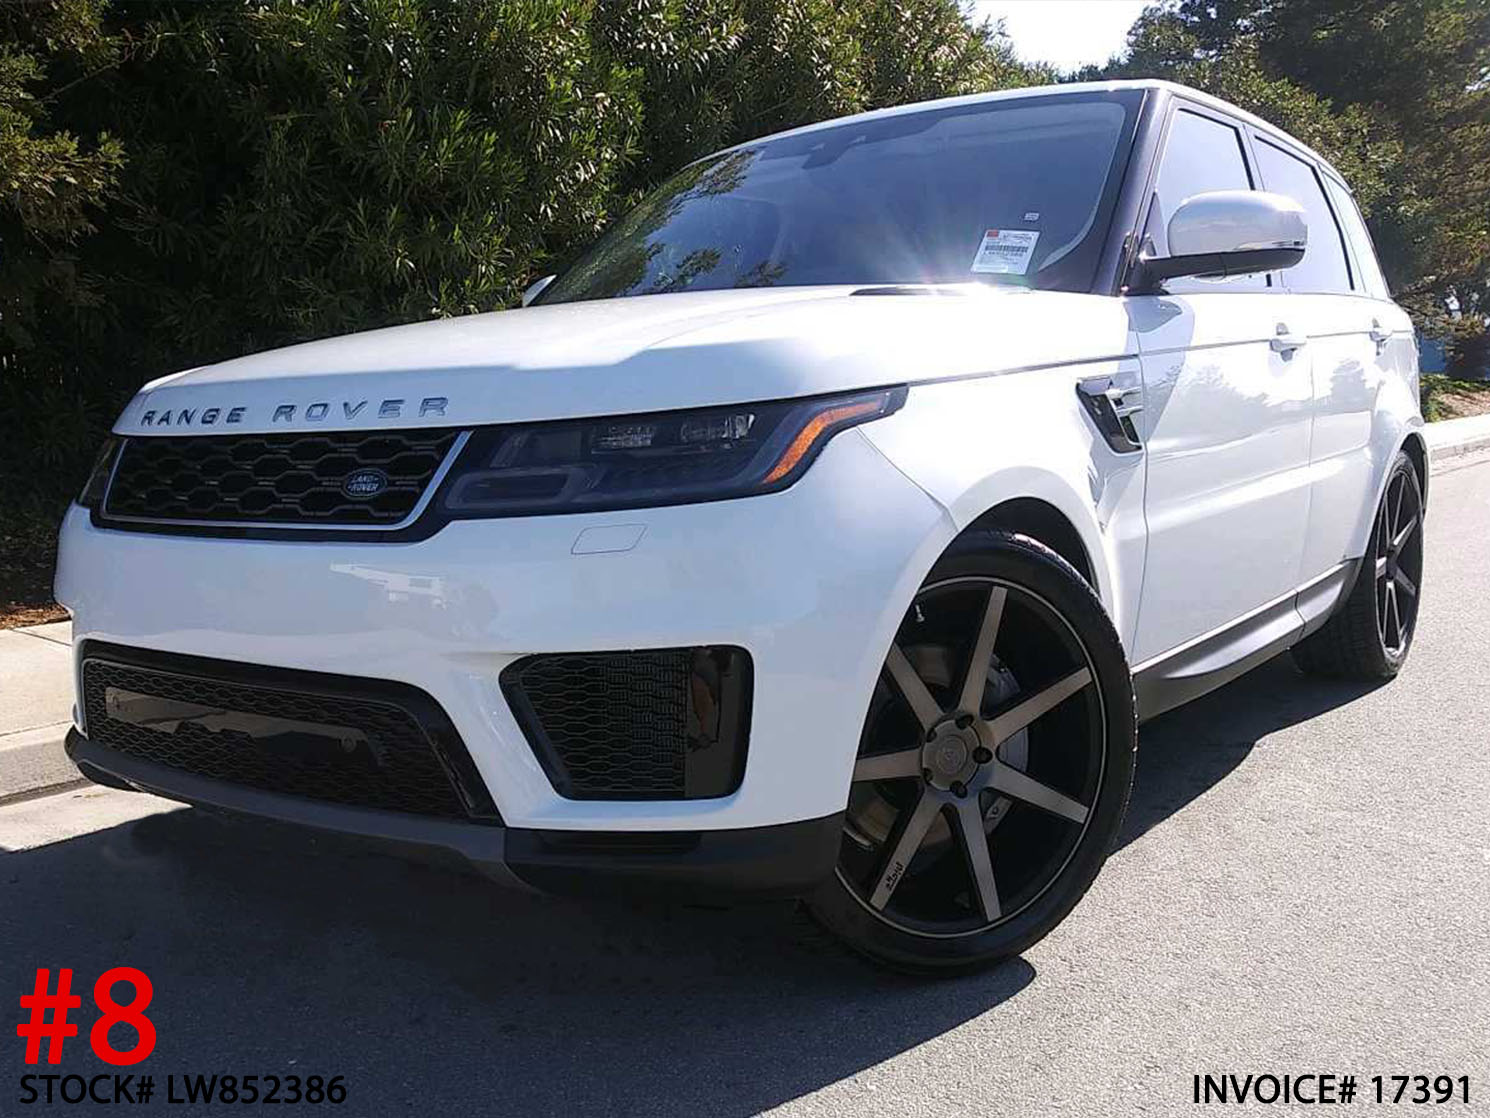 2019 LAND ROVER RANGE ROVER SPORT #LW852386